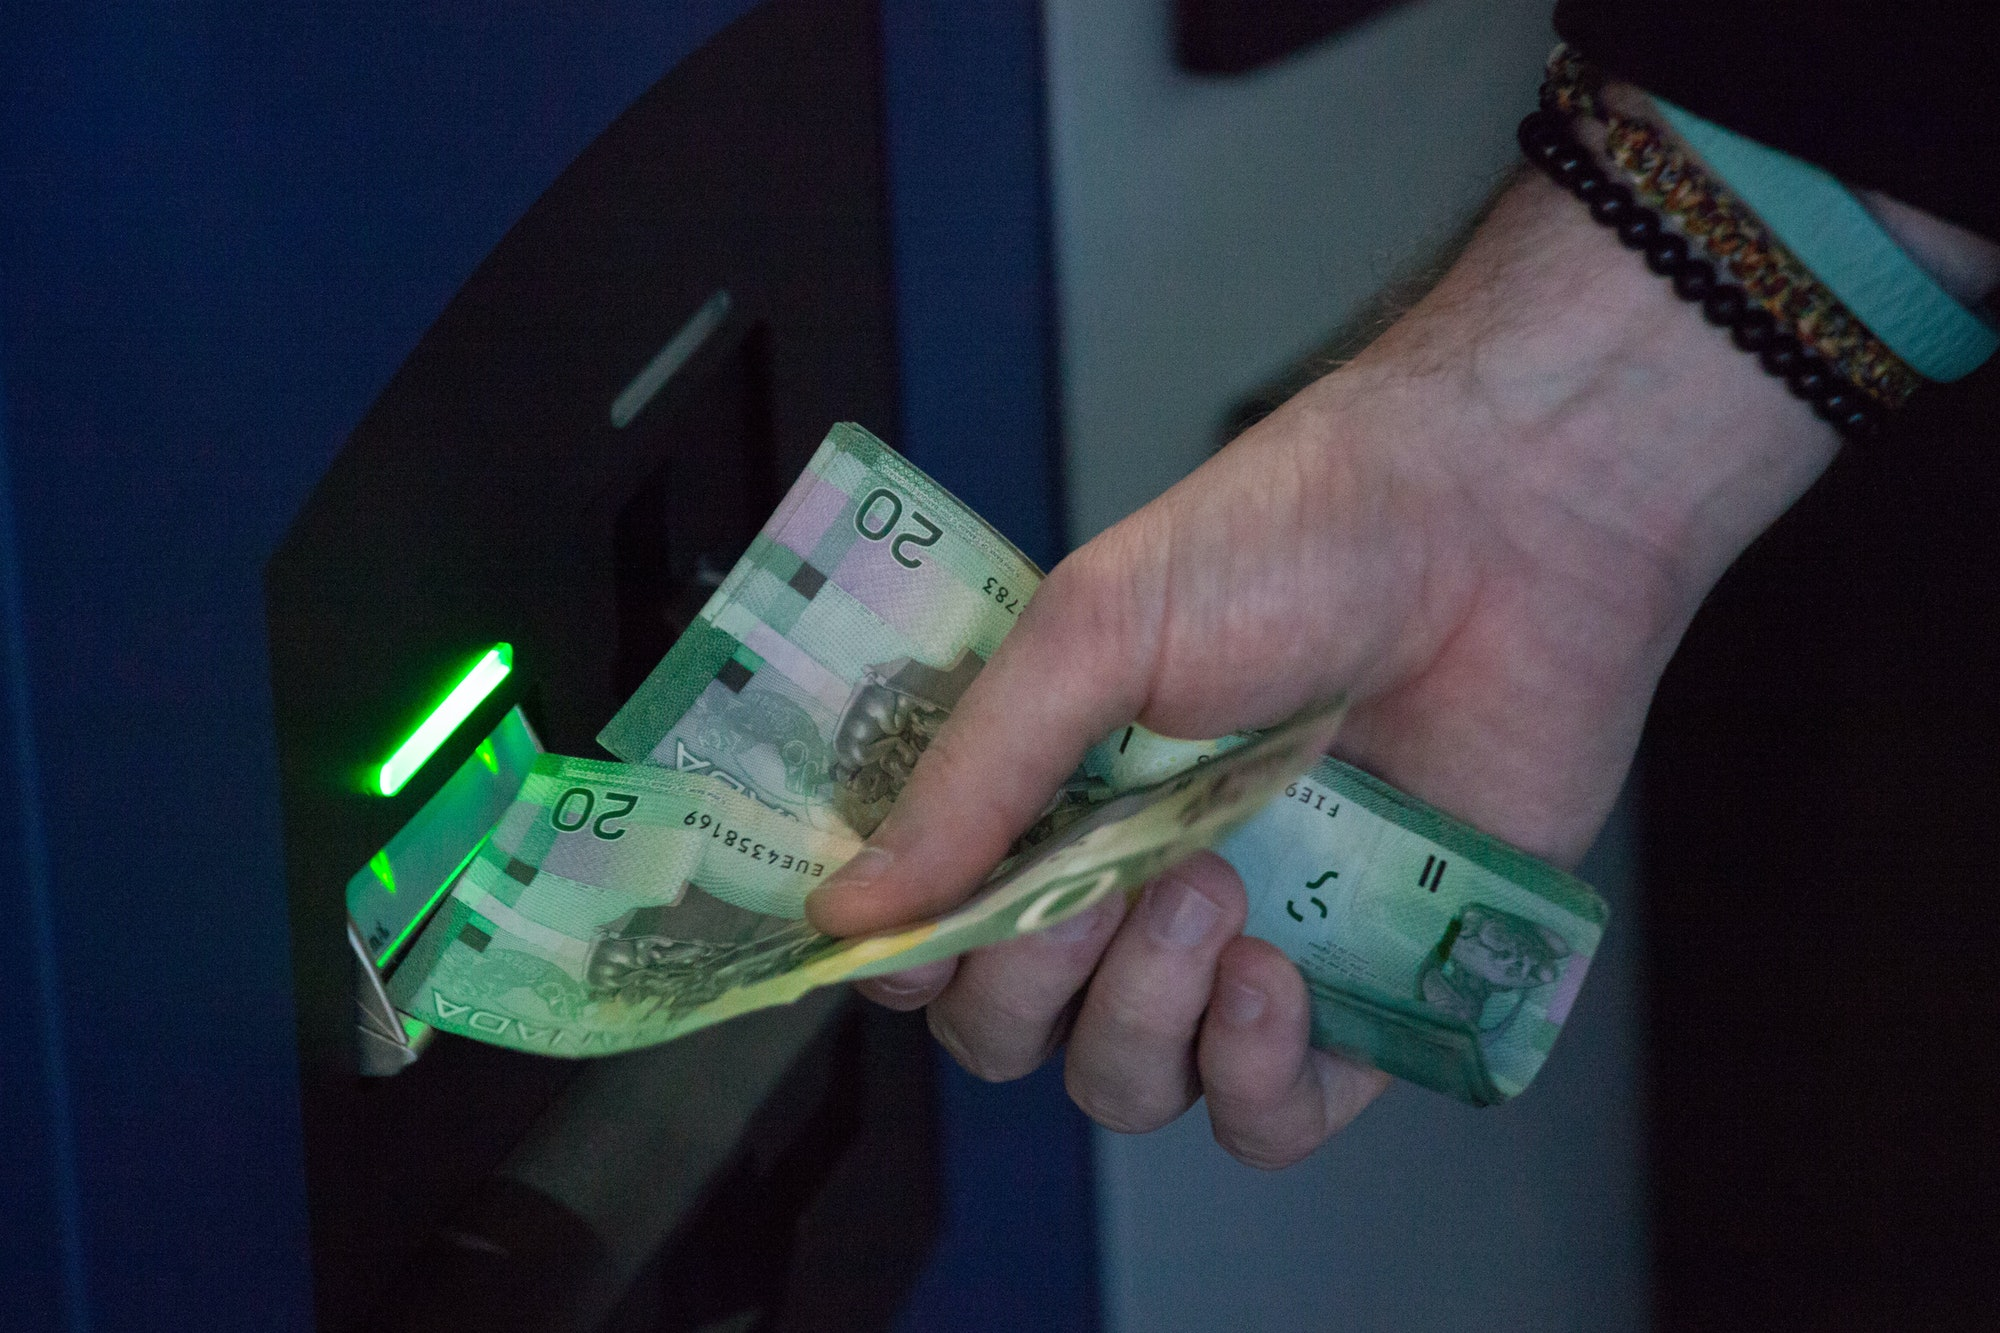 VANCOUVER, BC - OCTOBER 29: A user inserts Canadian currency into the world's first bitcoin ATM in exchange for bitcoins ATM at Waves Coffee House on October 29,2013in Vancouver, British Columbia, Canada. The ATM, named Robocoin, allows users to buy or sell the digital currency known as bitcoins. Once only used for black market sales on the internet, bitcoins are starting to be accepted at a growing number of businesses. (Photo by David Ryder/Getty Images)